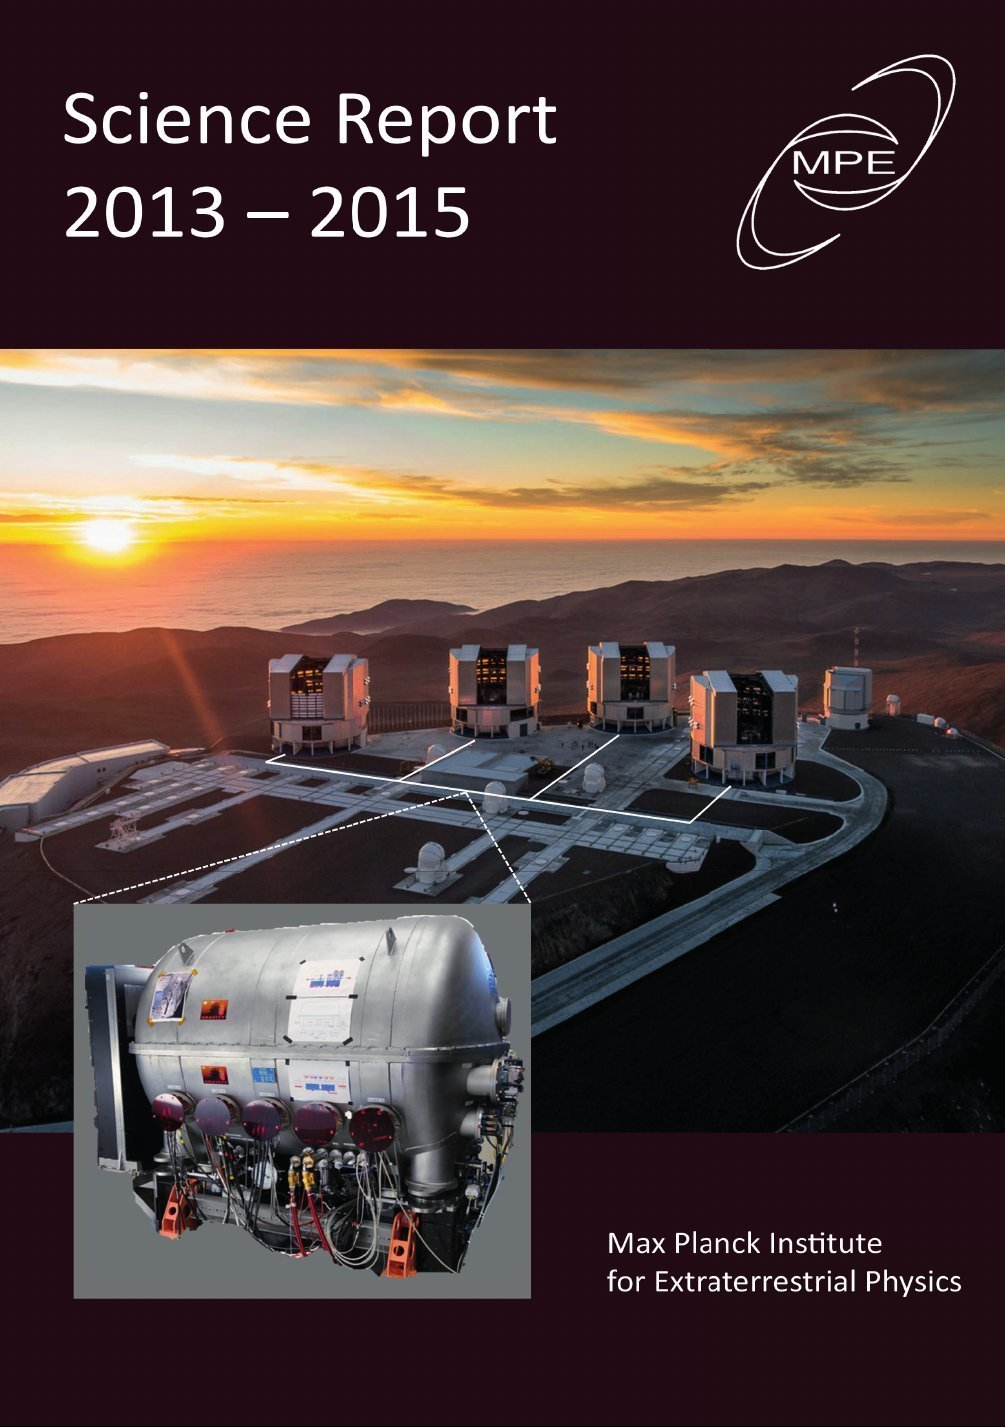 Science Report 2013-2015